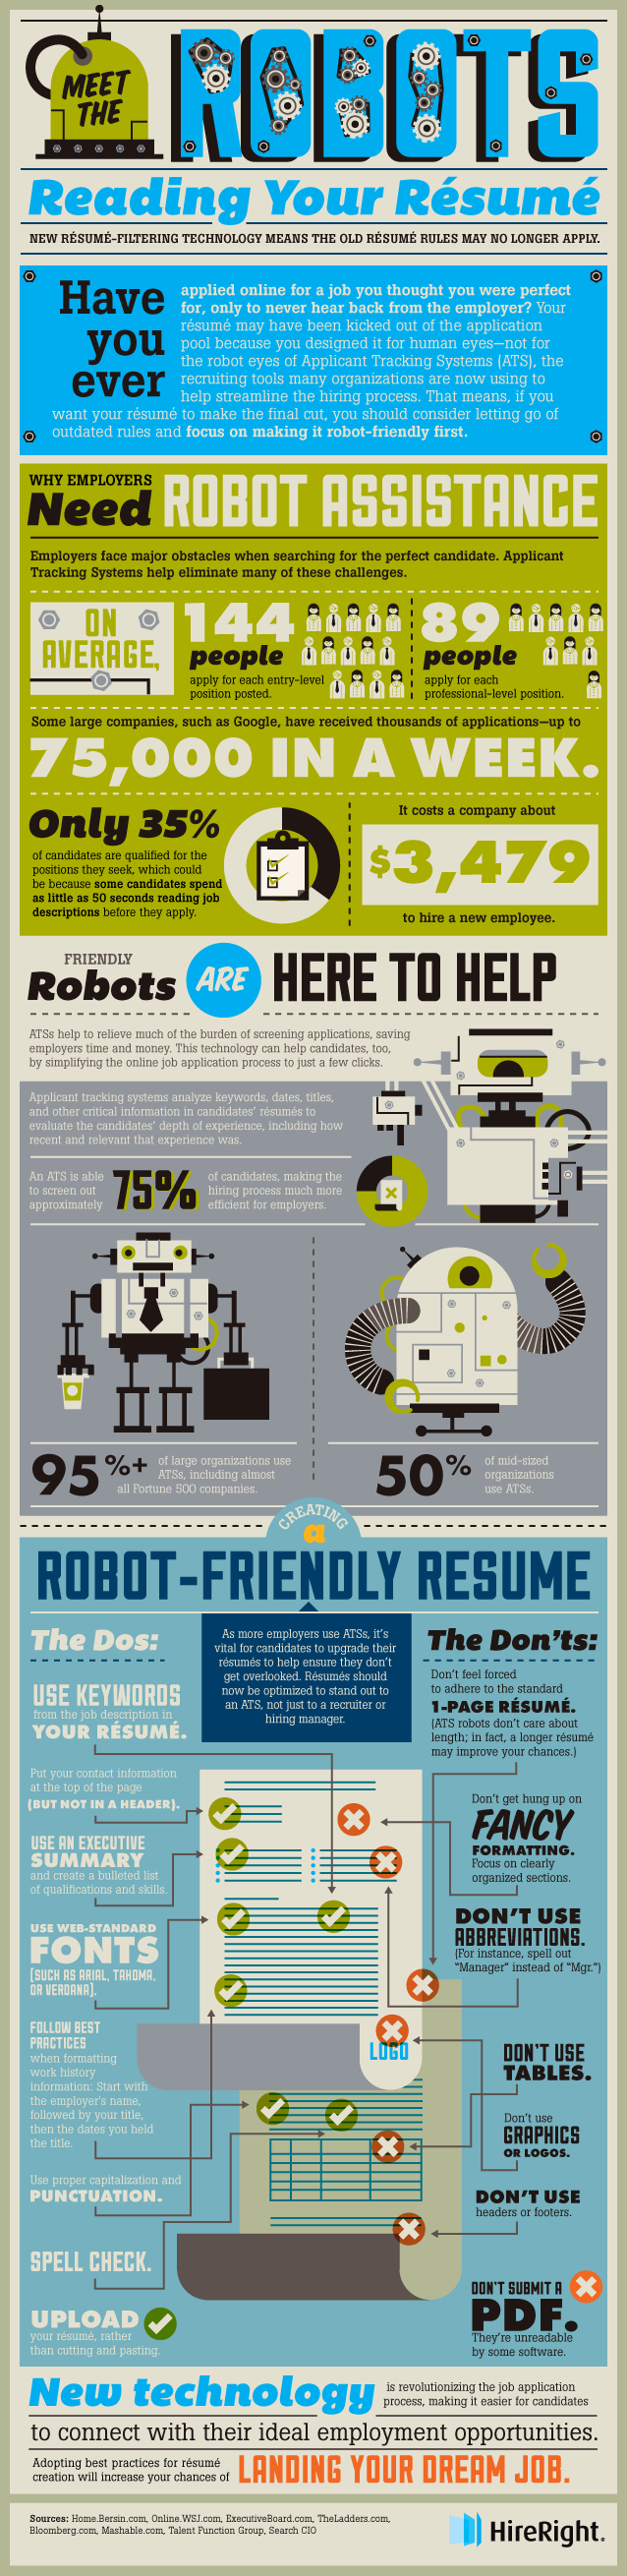 Meet The Robots Reading Your Resume   An Infographic By HireRight  Ats Friendly Resume